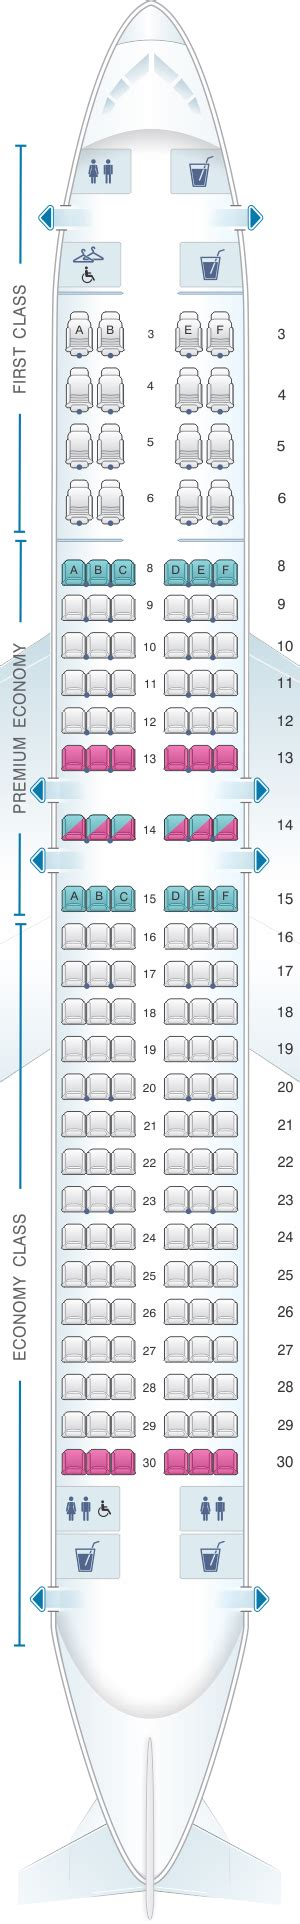 american airlines seating chart 737 plan de cabine american airlines boeing b737 800